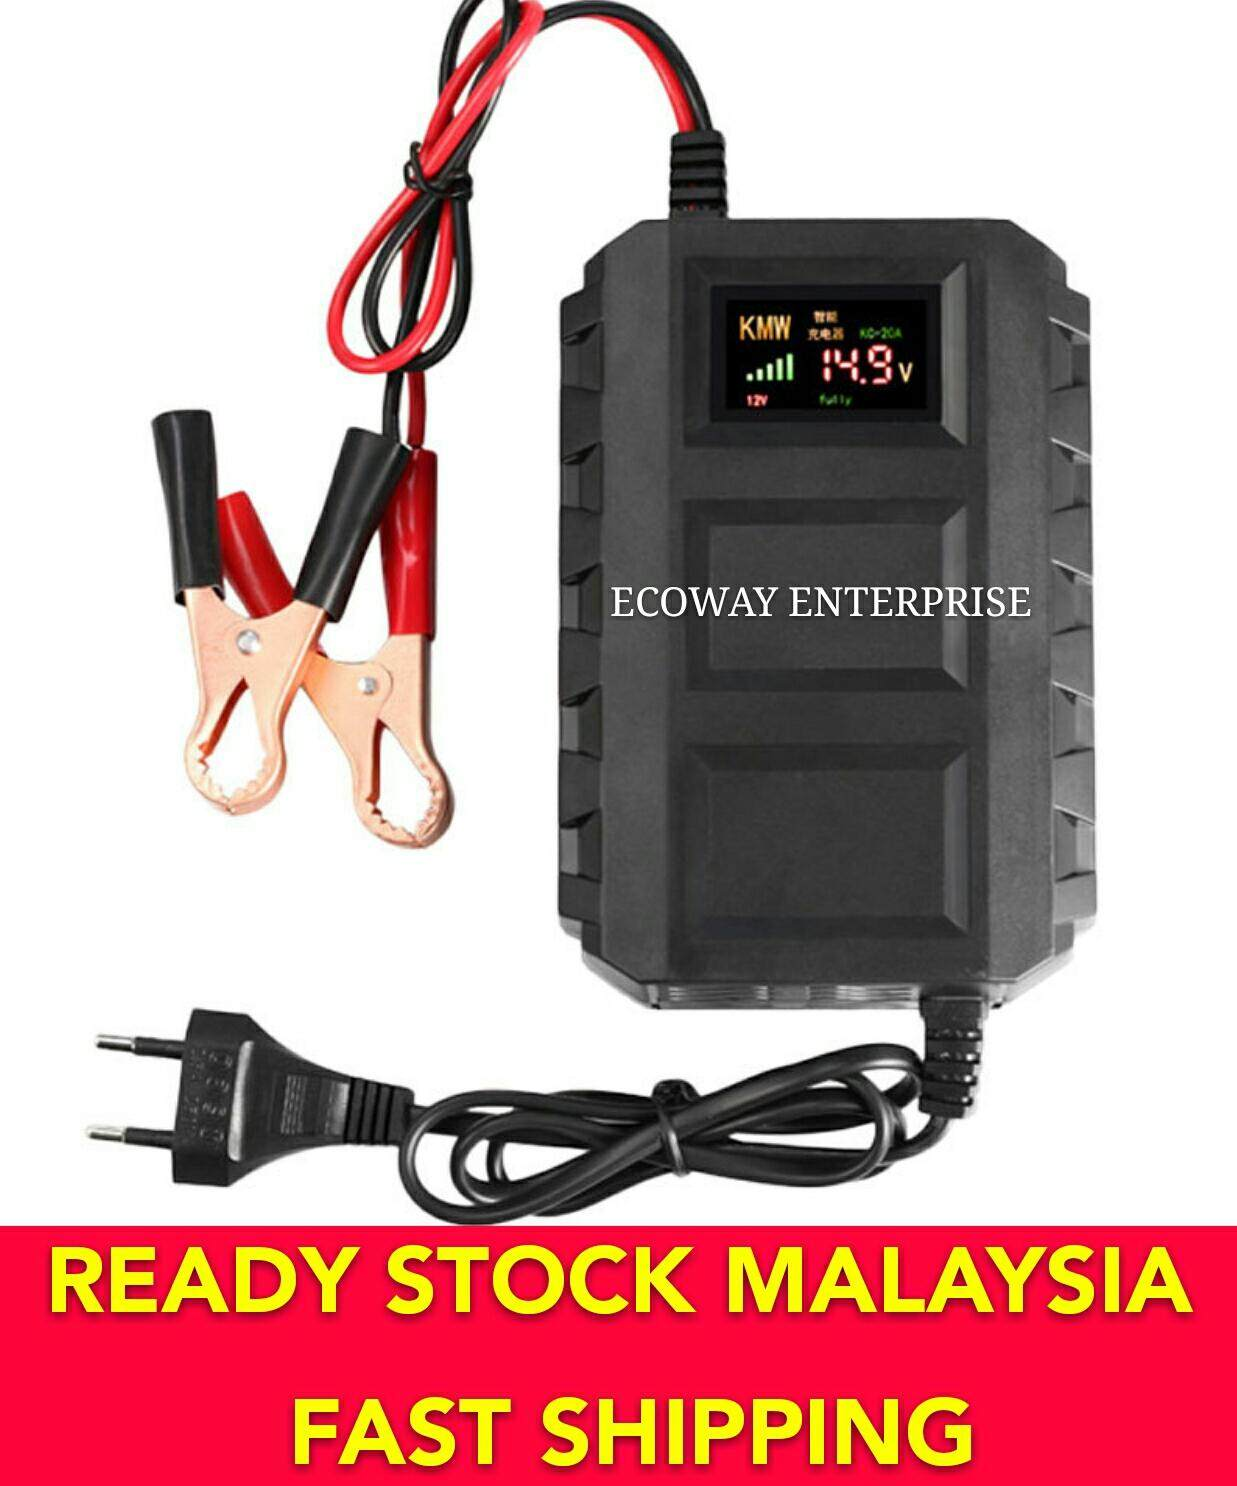 Charger 12v 20a Pengecas Bateri Kereta Motorsikal Battery Car Motorcycle By Ecoway Enterprise.